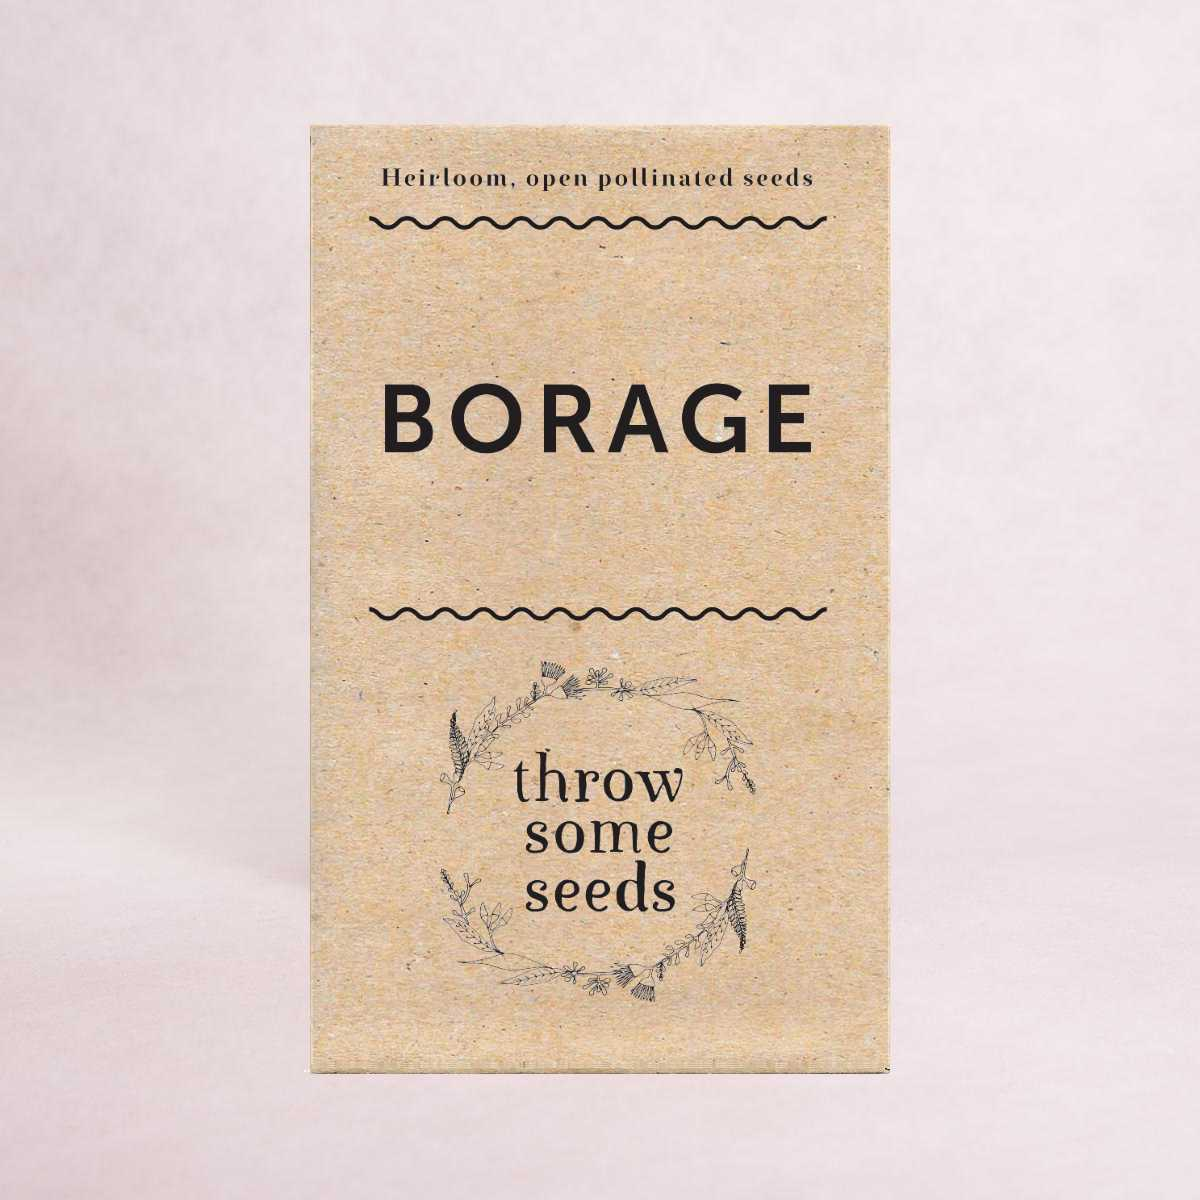 Borage - Heirloom Seeds - Seeds - Throw Some Seeds